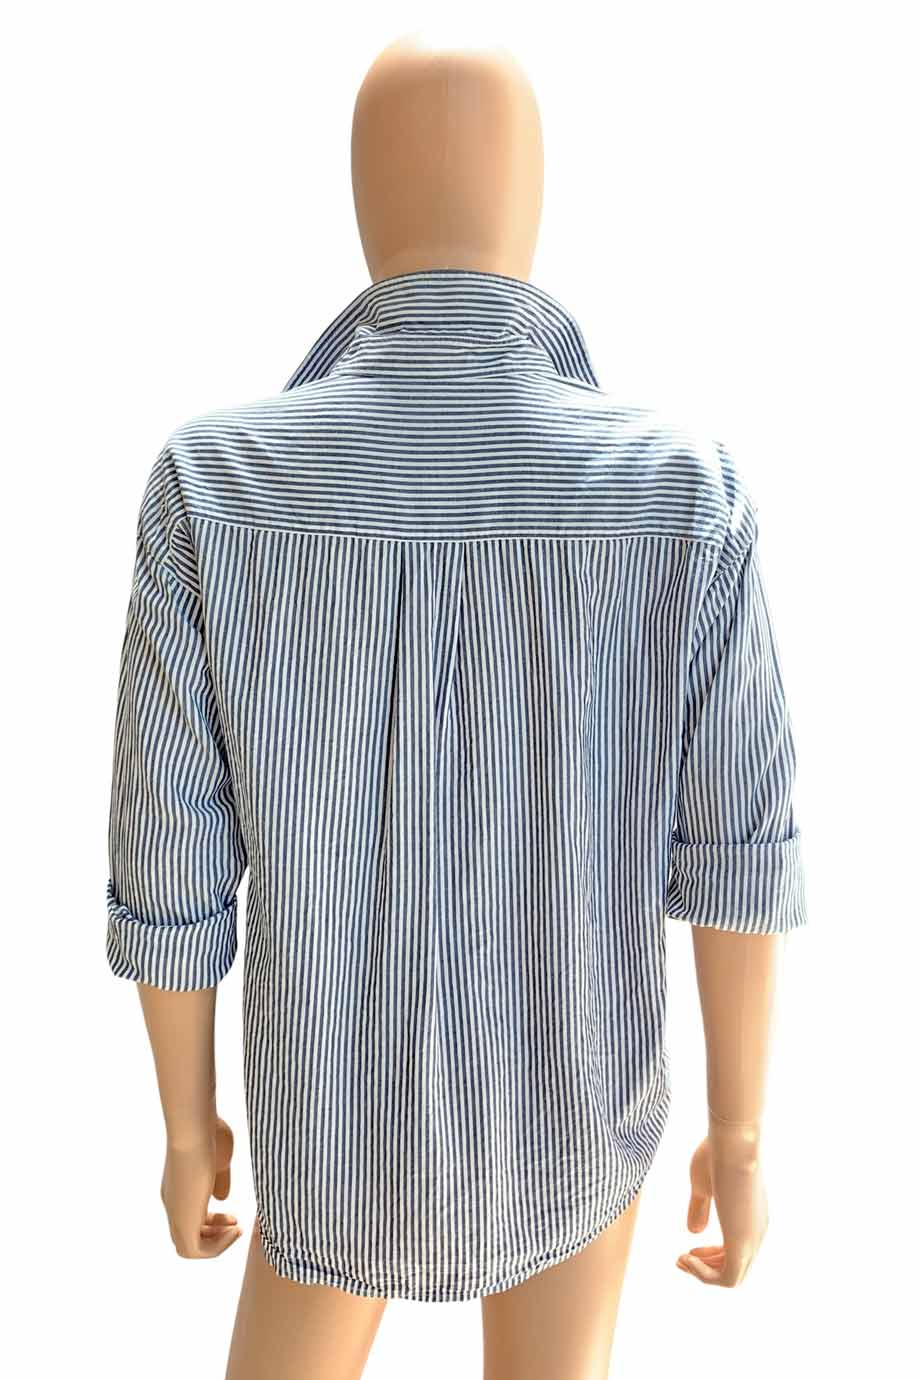 Vince Navy Stripe Long Sleeve Prep School Button-Up Shirt / Sz 6